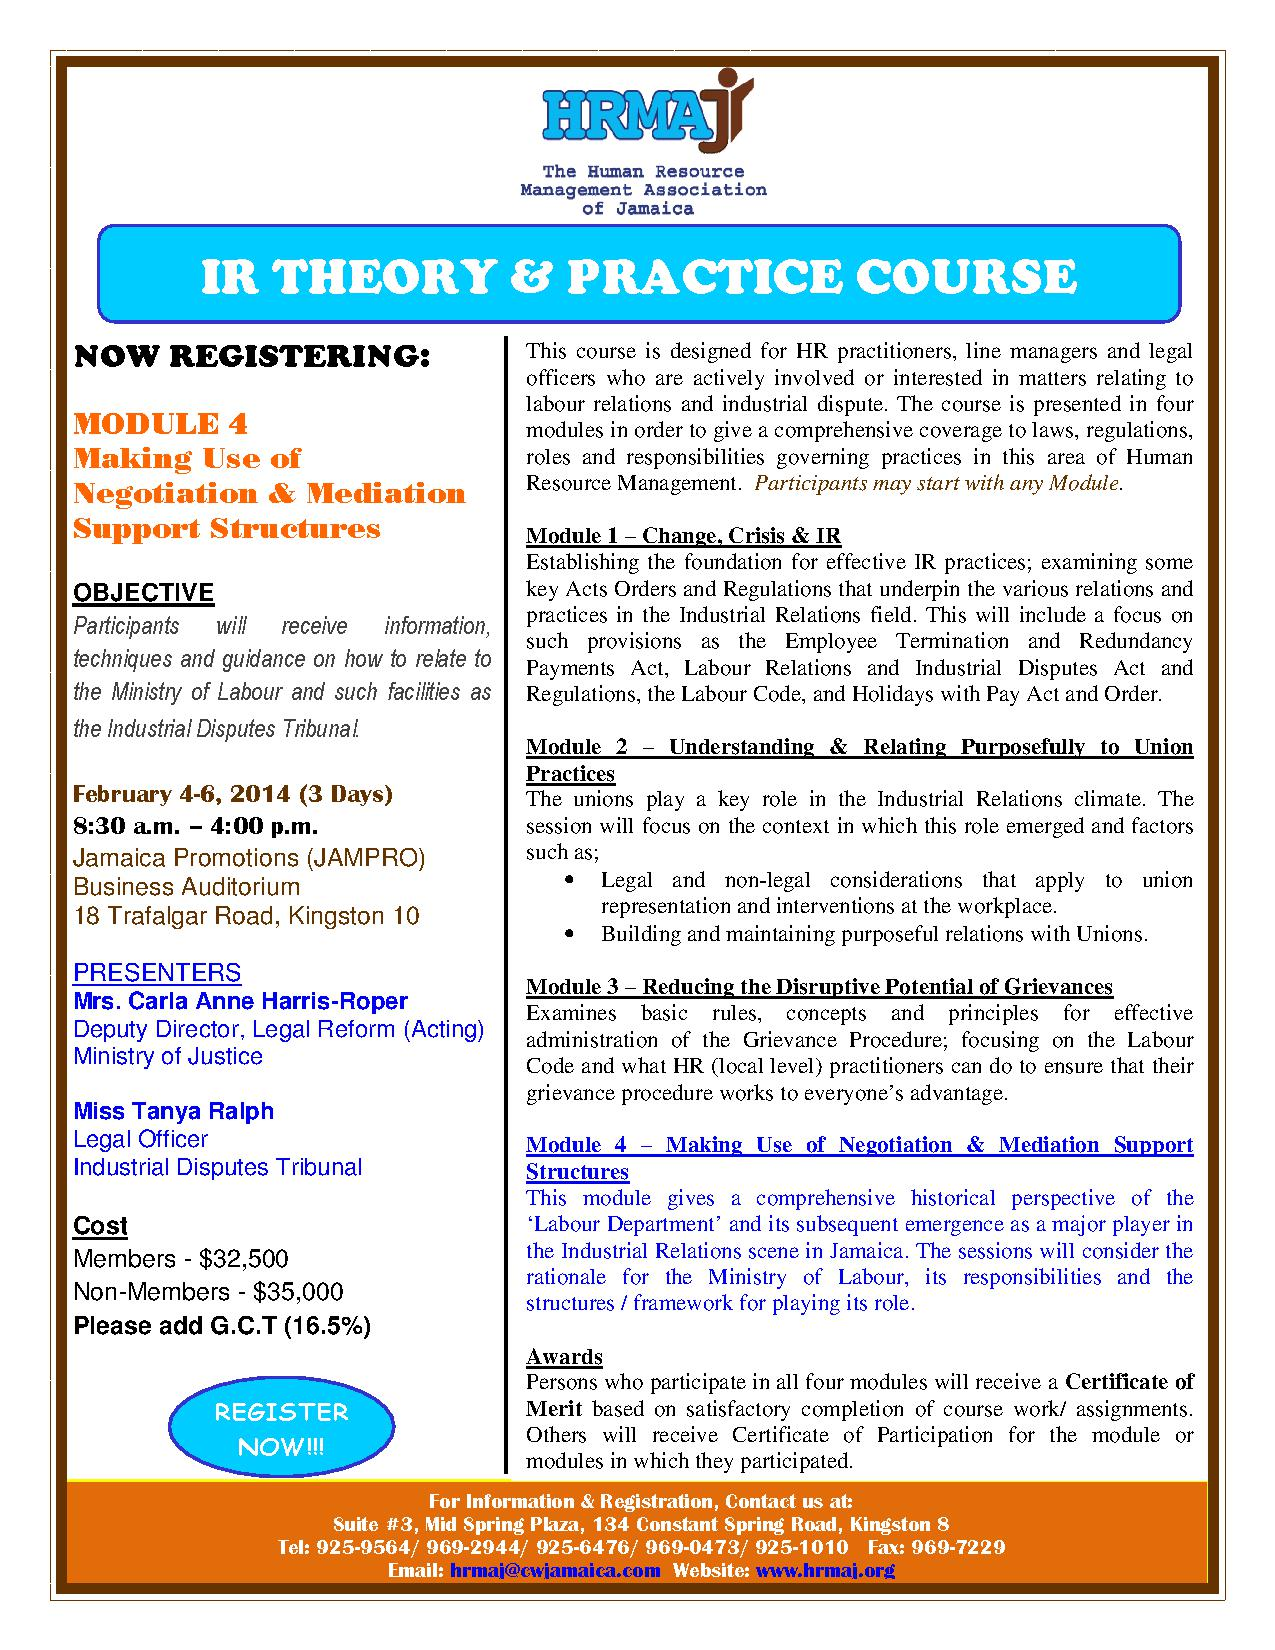 IR Theory Practice Course Flyer (Module 4)